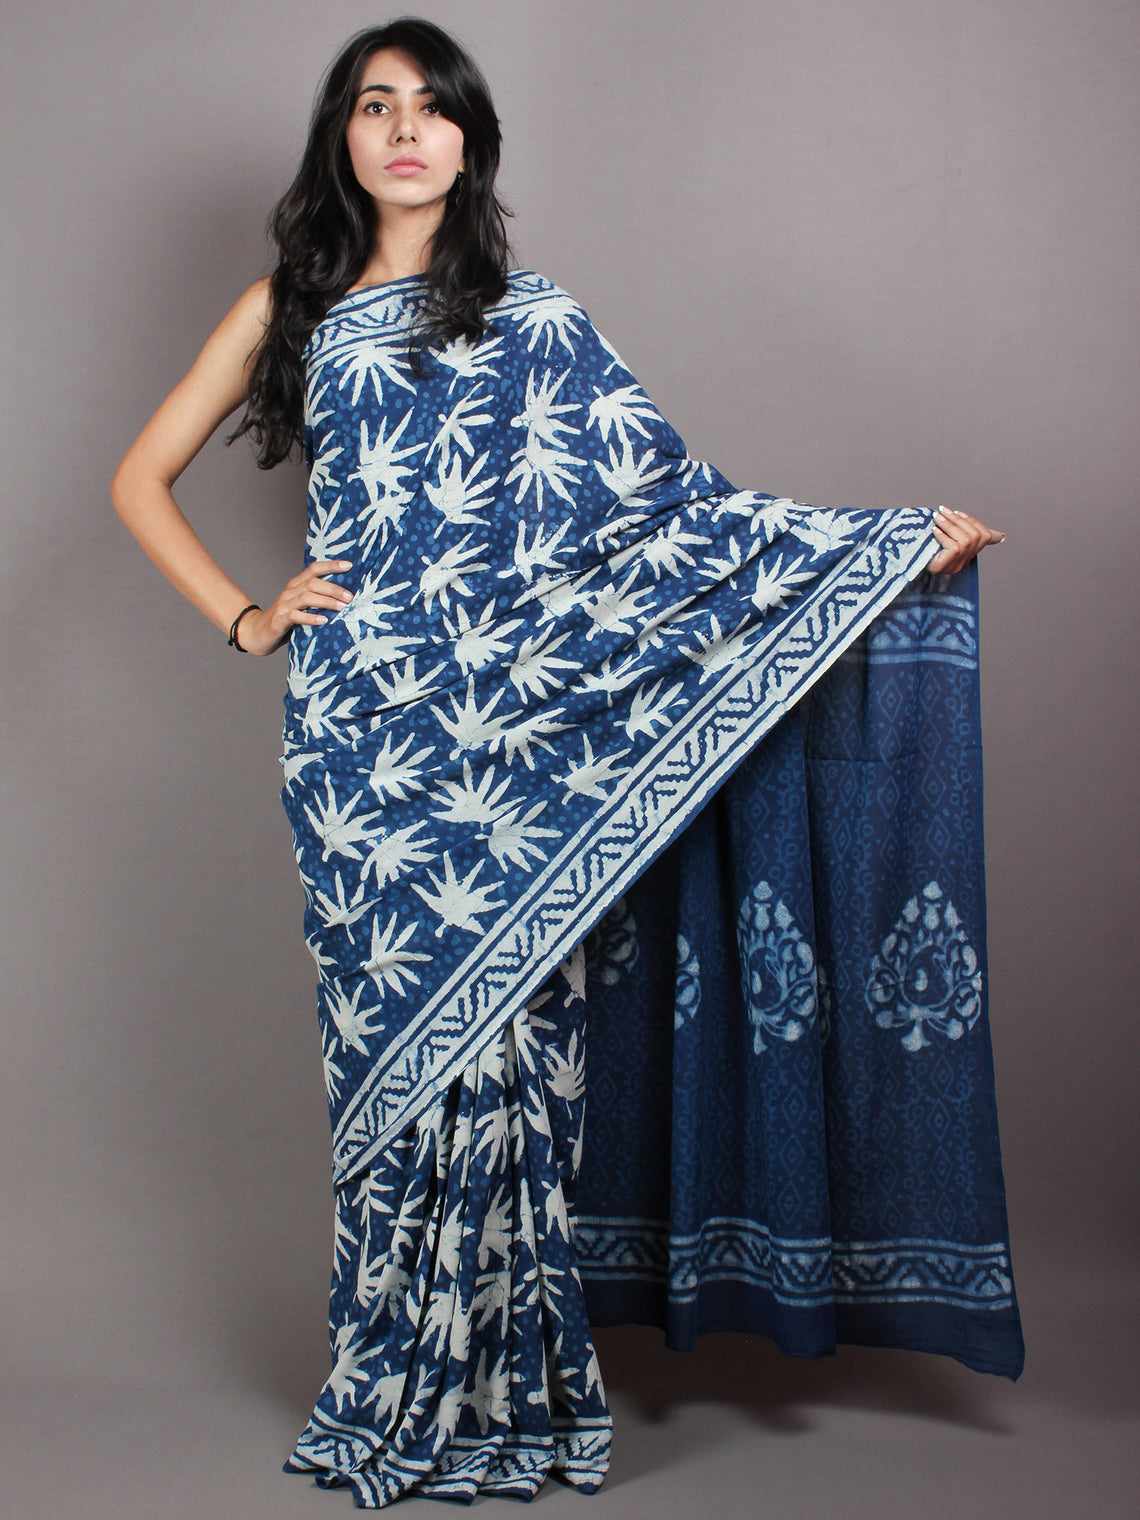 Indigo White Hand Block Printed in Natural Colors Cotton Mul Saree - S03170426